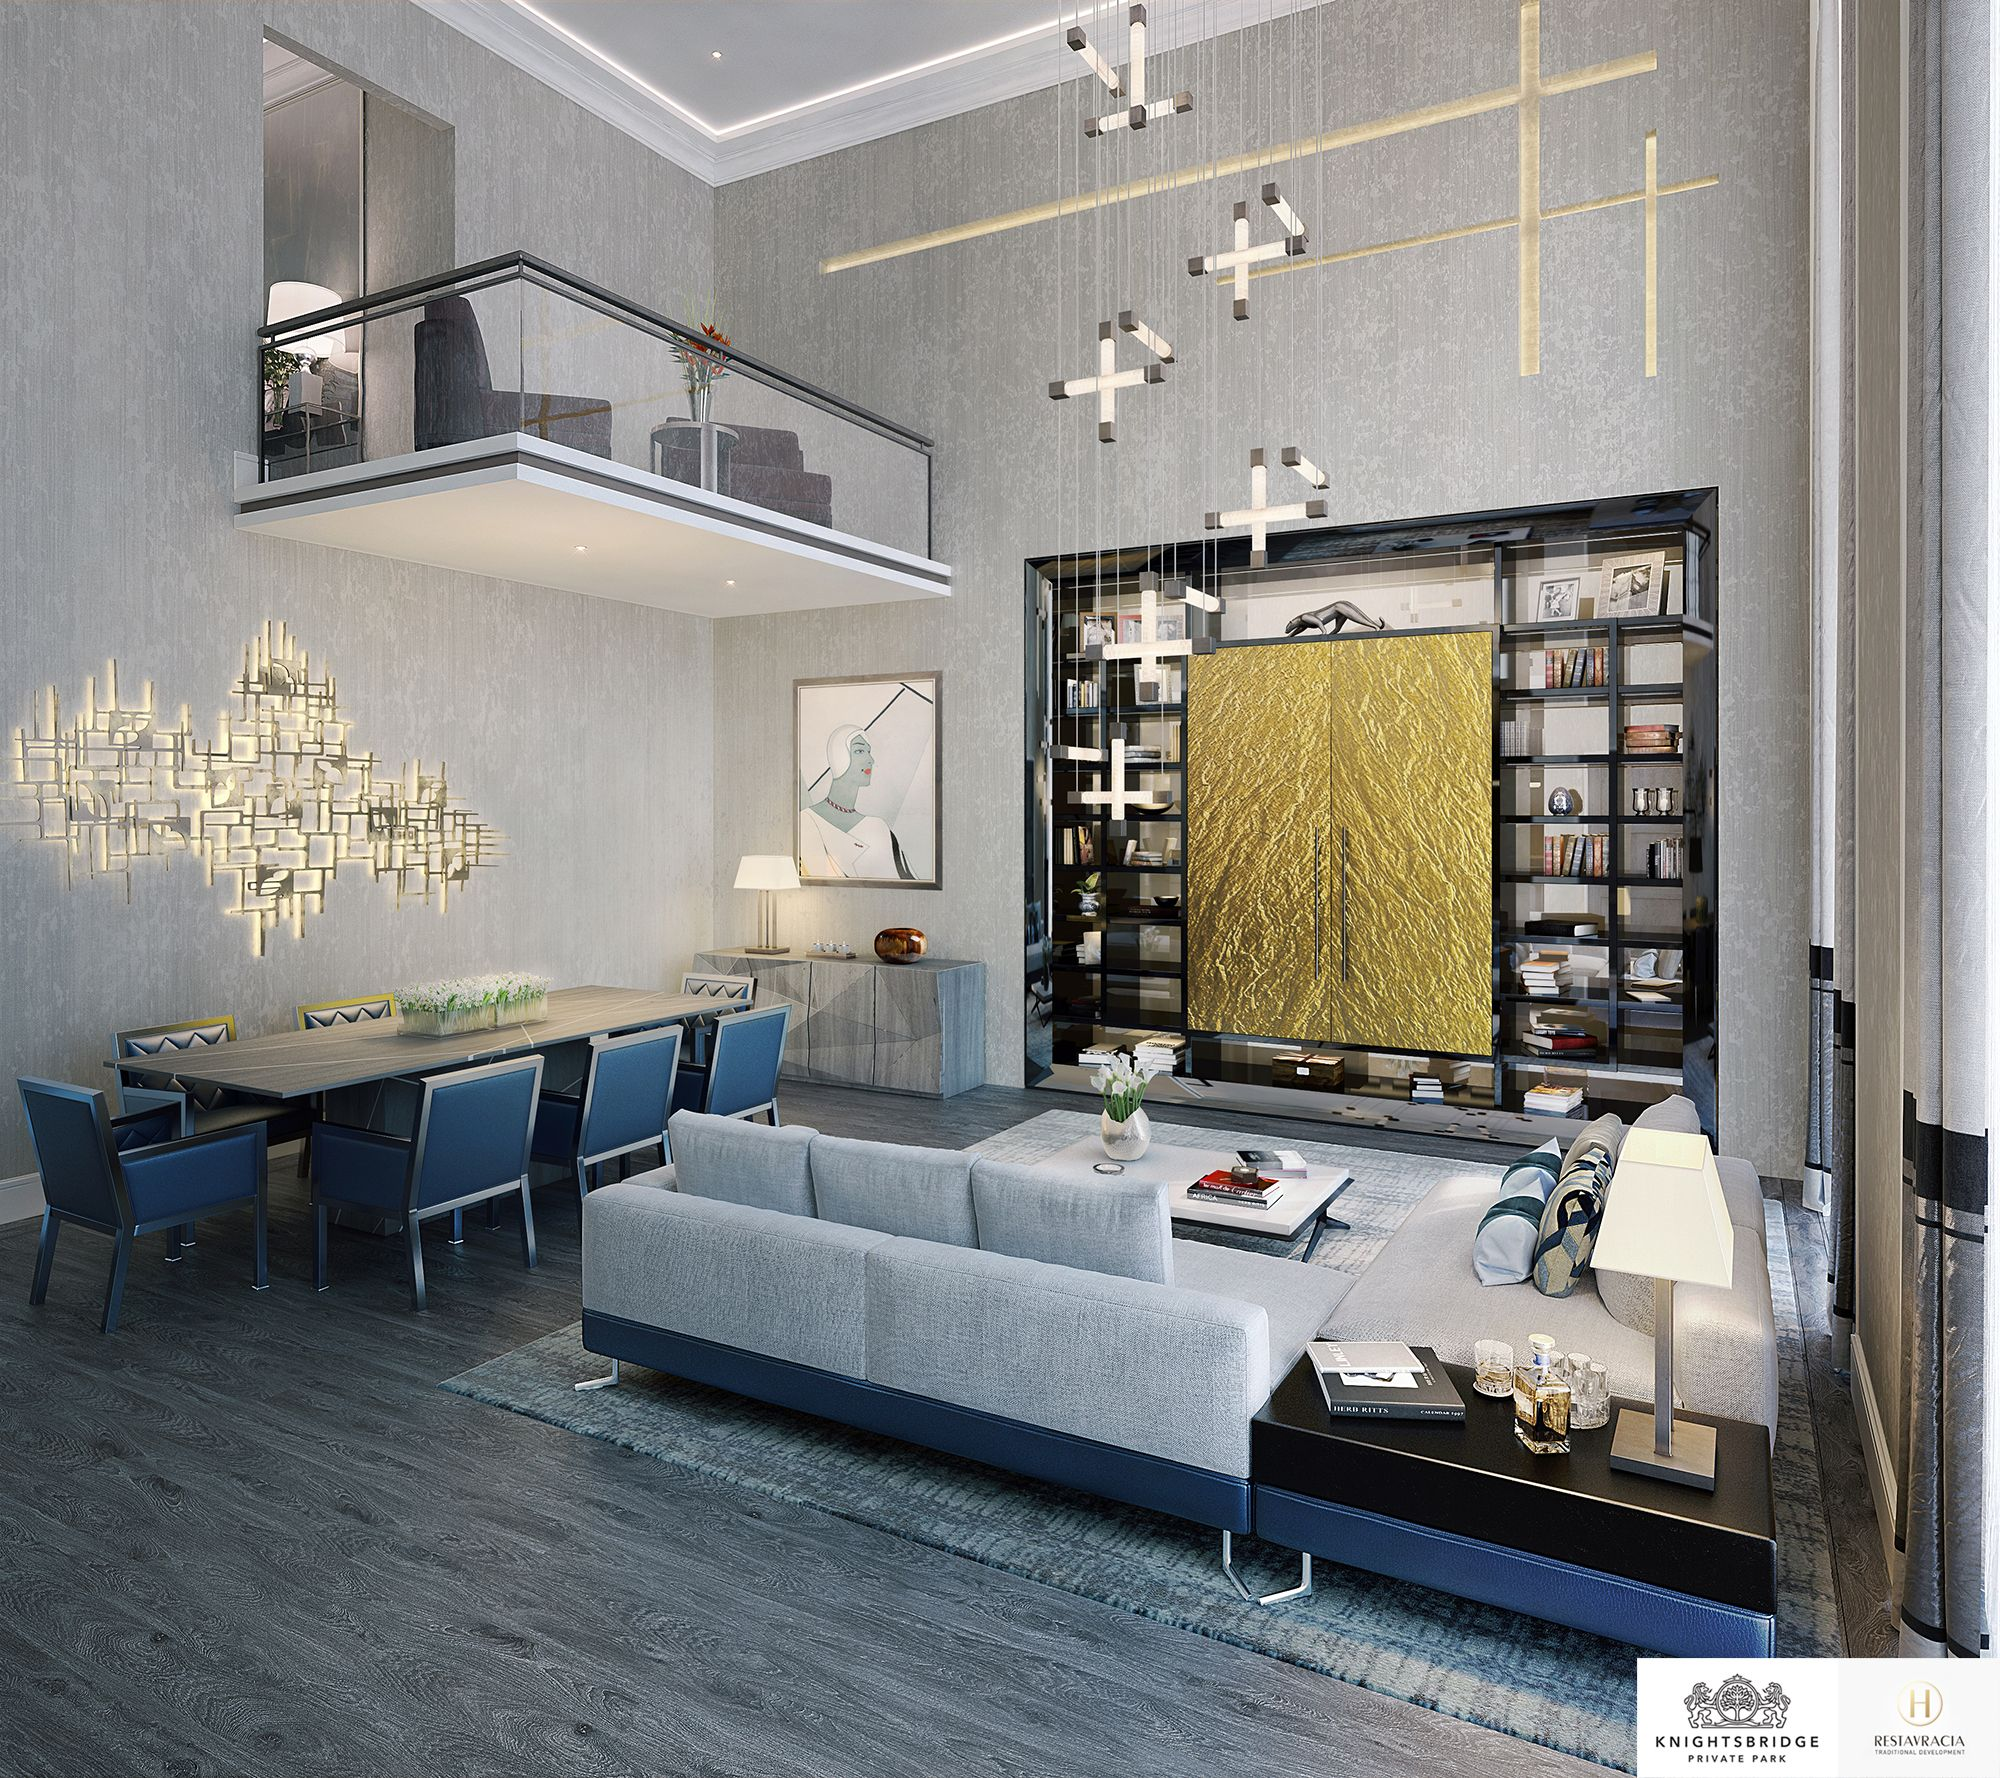 Home interior design drawing room linley interior design has produced design options for the interiors